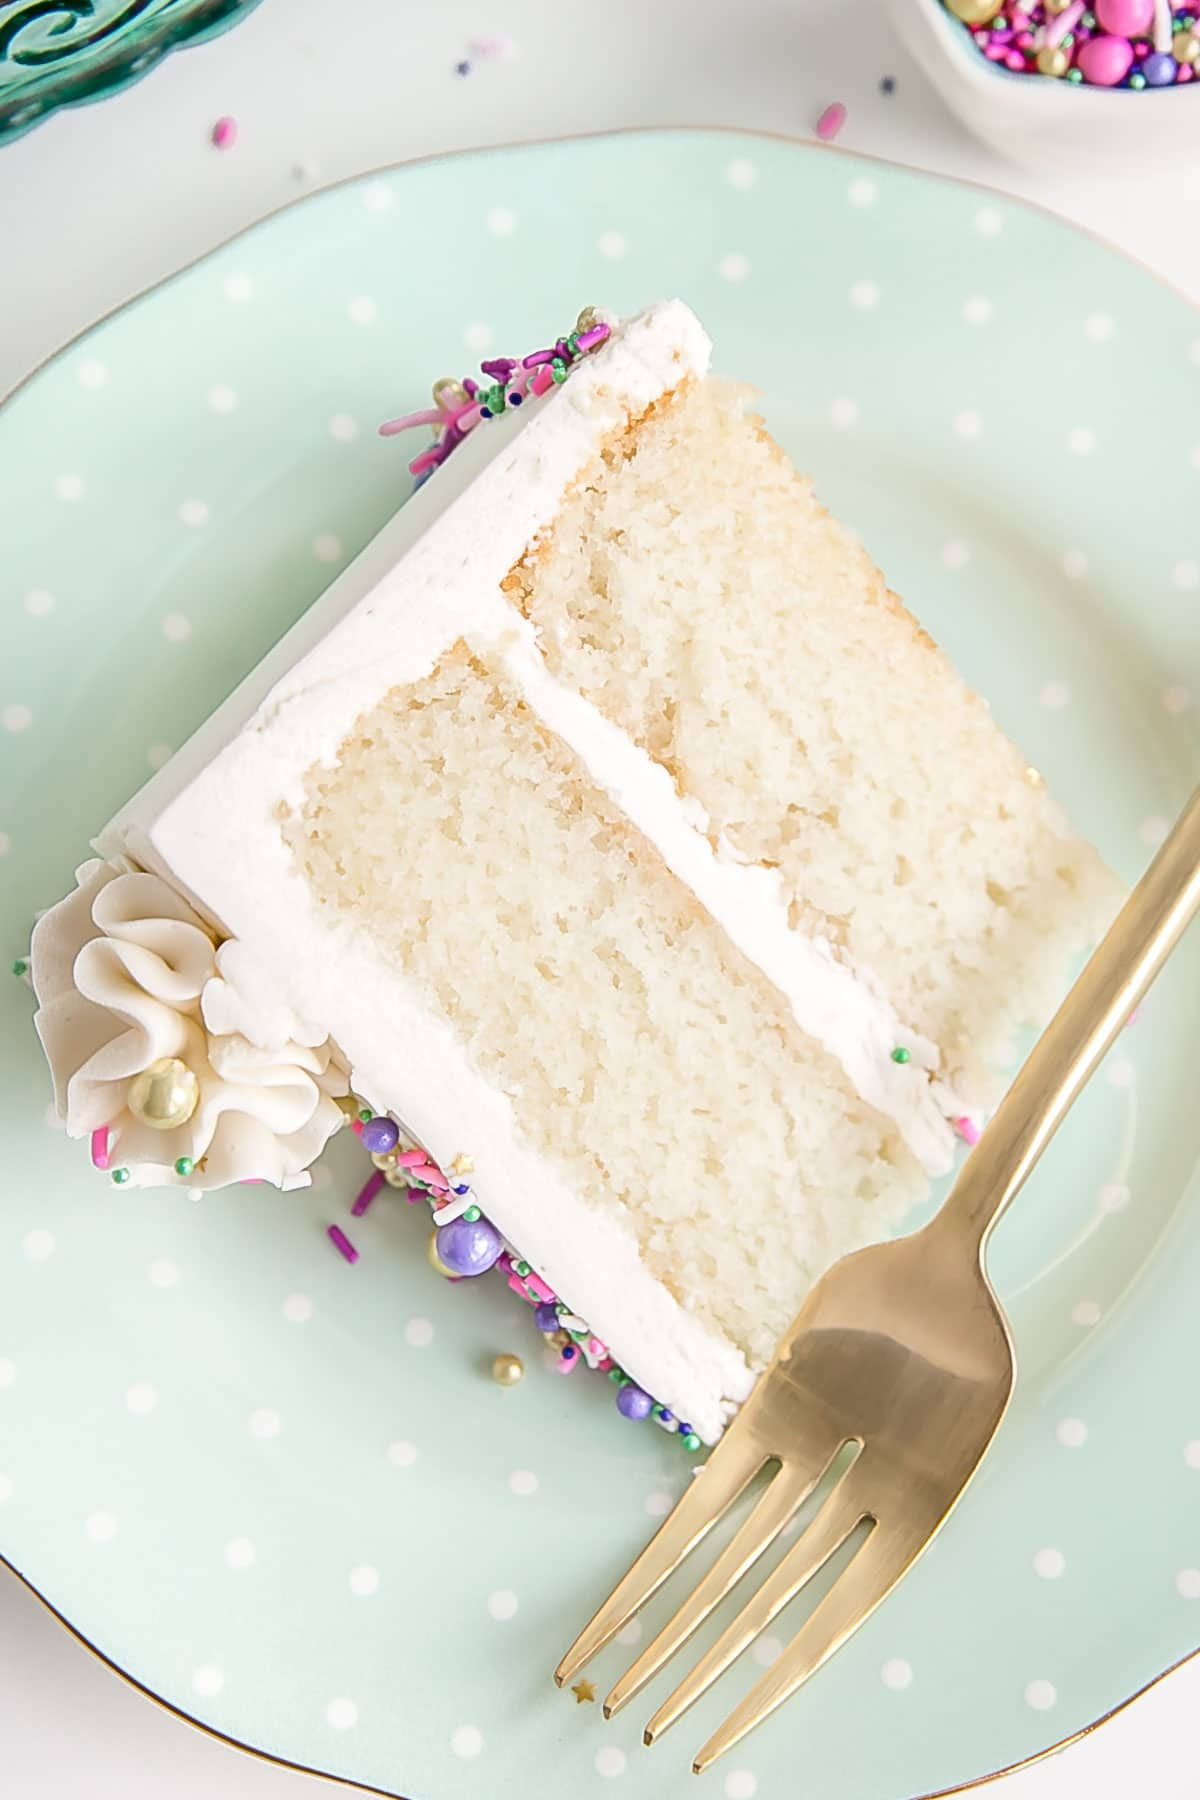 Slice of white cake with white buttercream